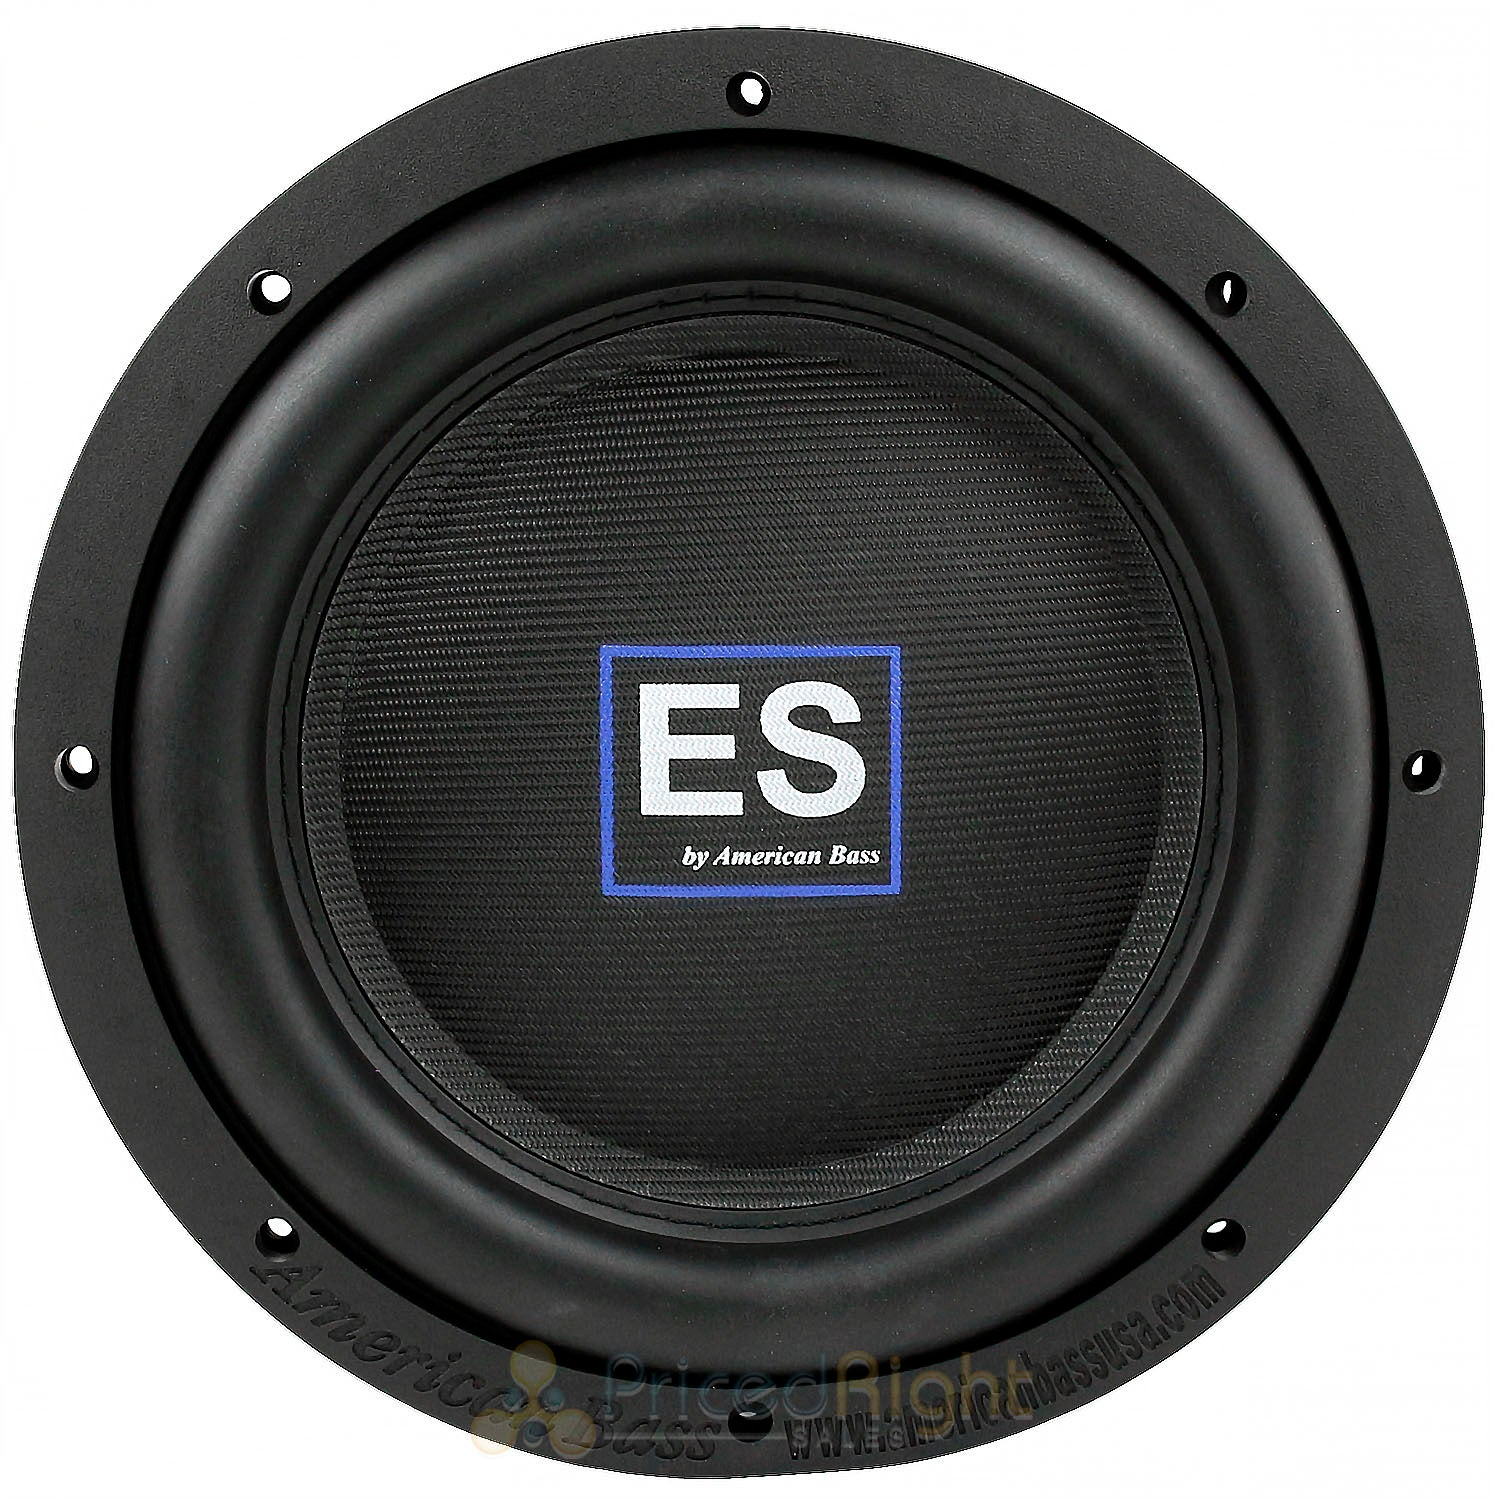 "2 Pack American Bass 10"" Slim Subwoofer 1000W Max DVC 4 Ohm Car Audio ES-1044"